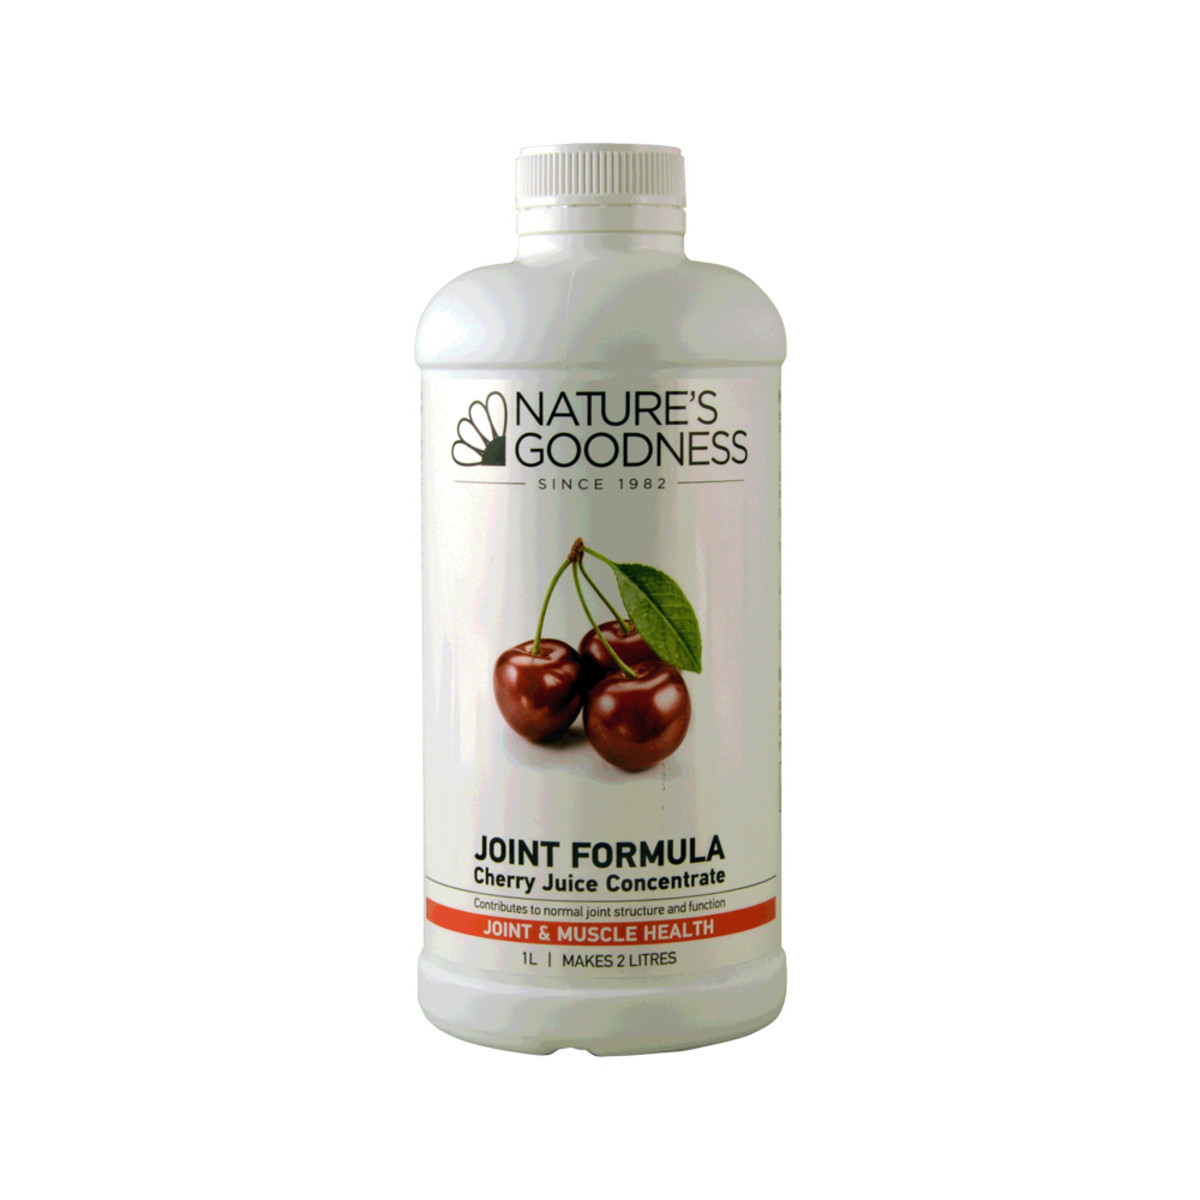 Nature's Goodness Australia JOINT FORMULA Cherry Juice Concentrate 500ml  or 1L